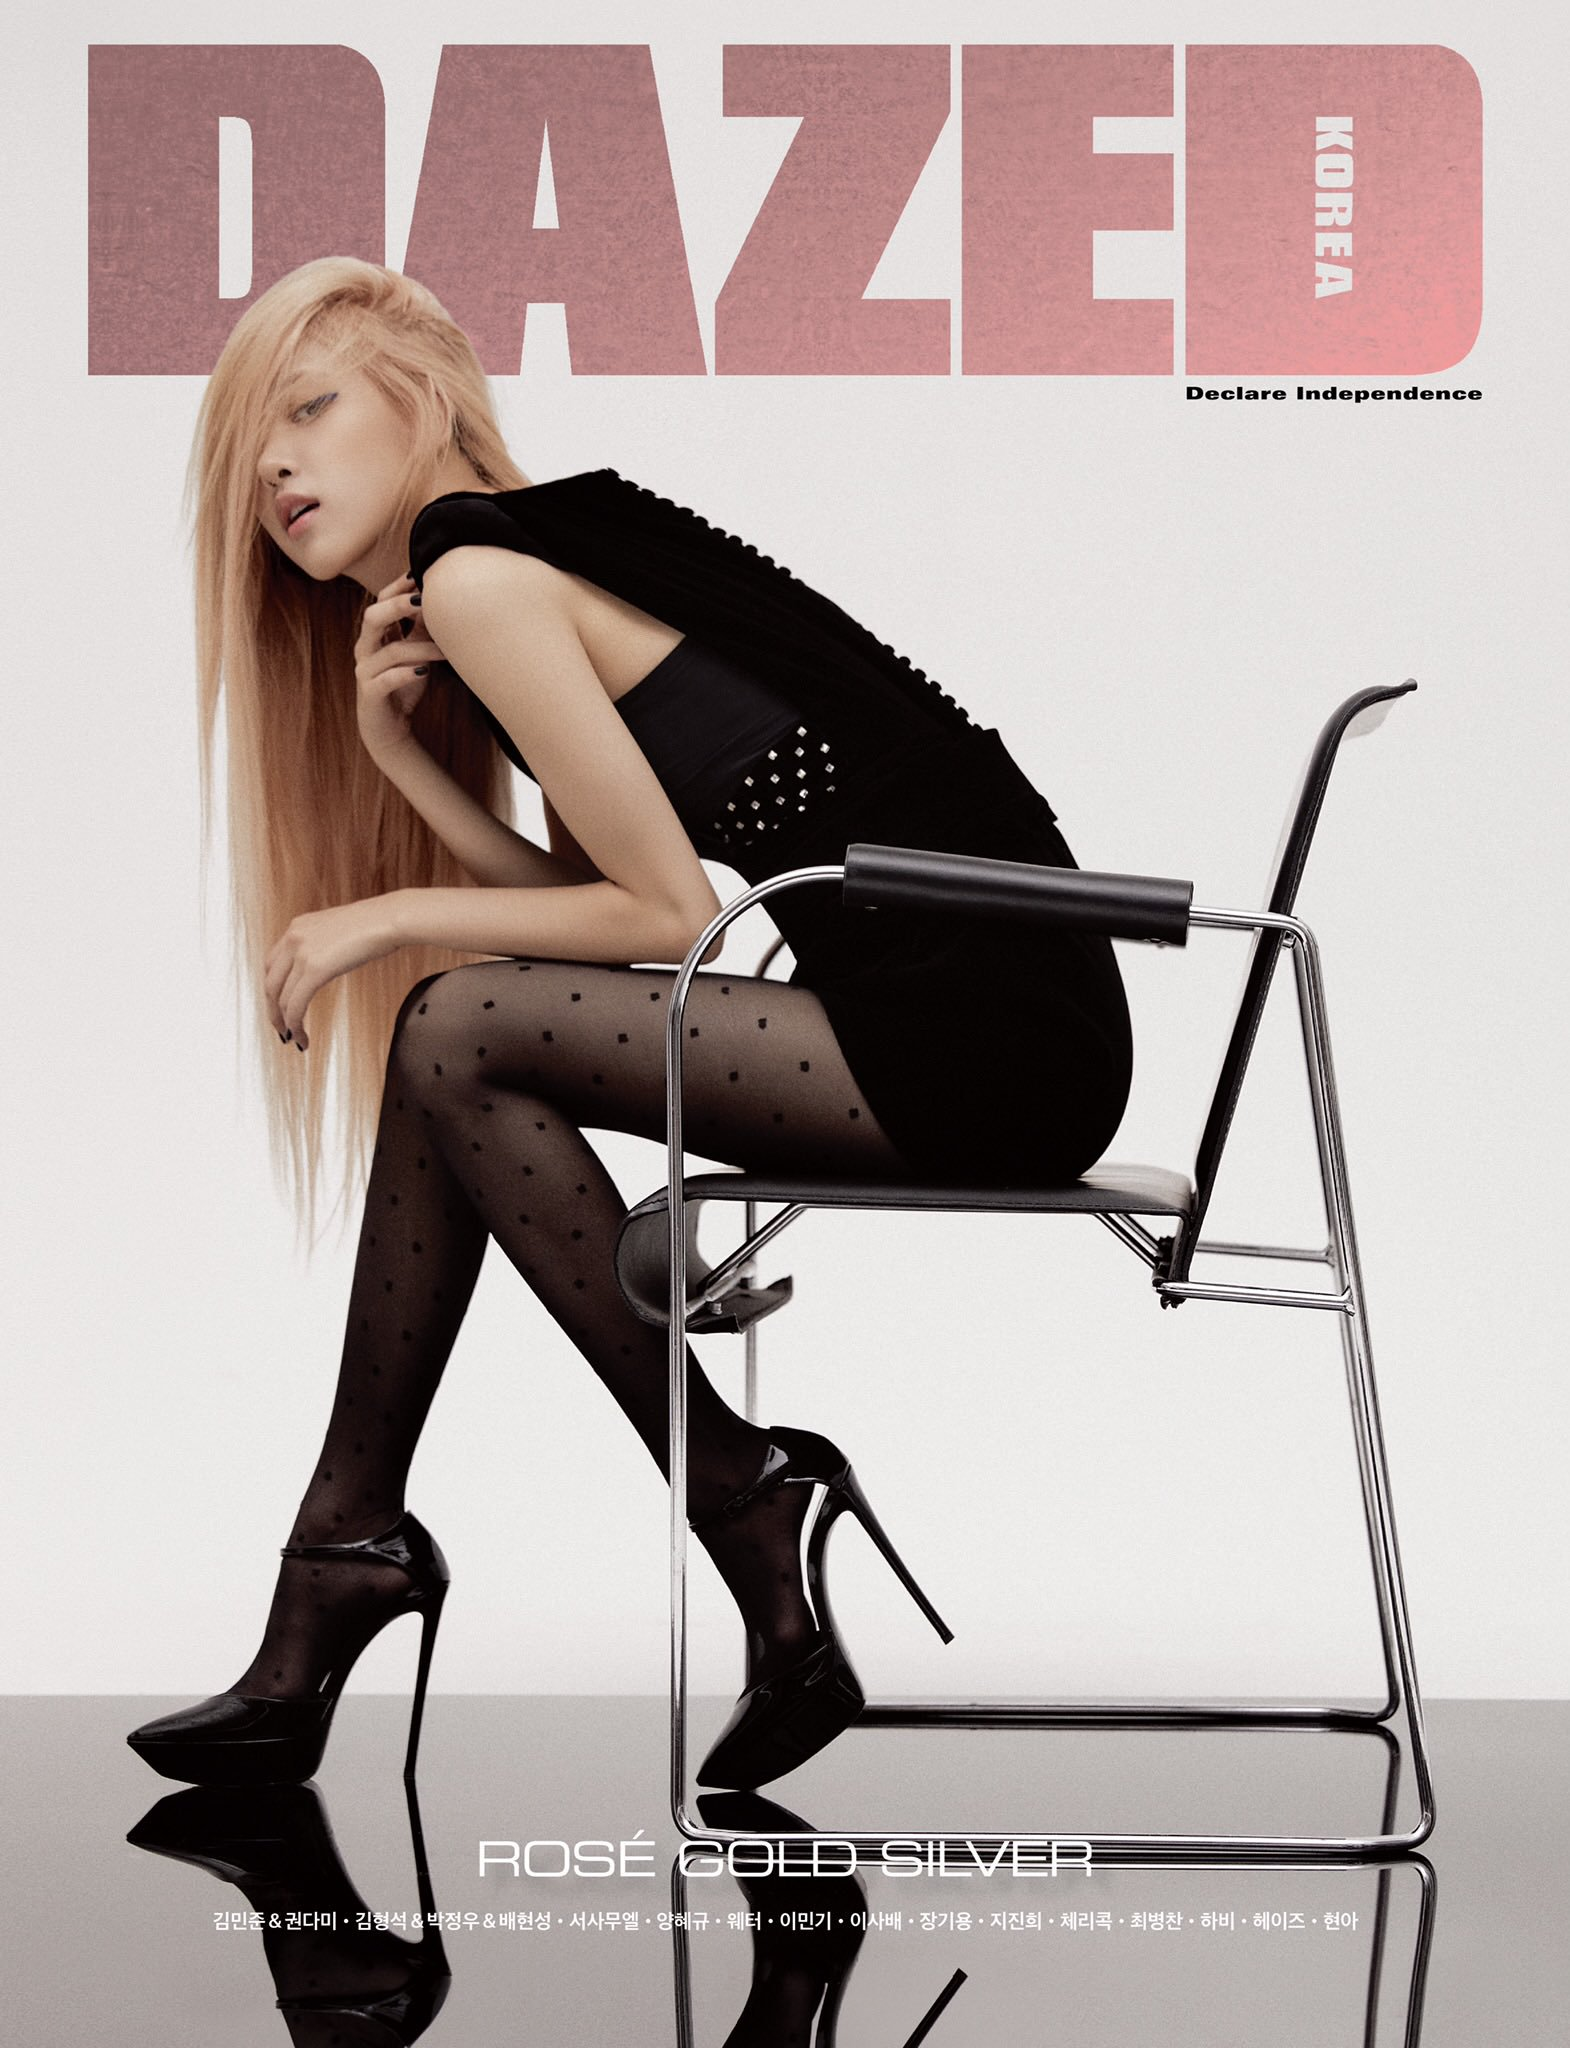 blackpink rose dazed korea october 3